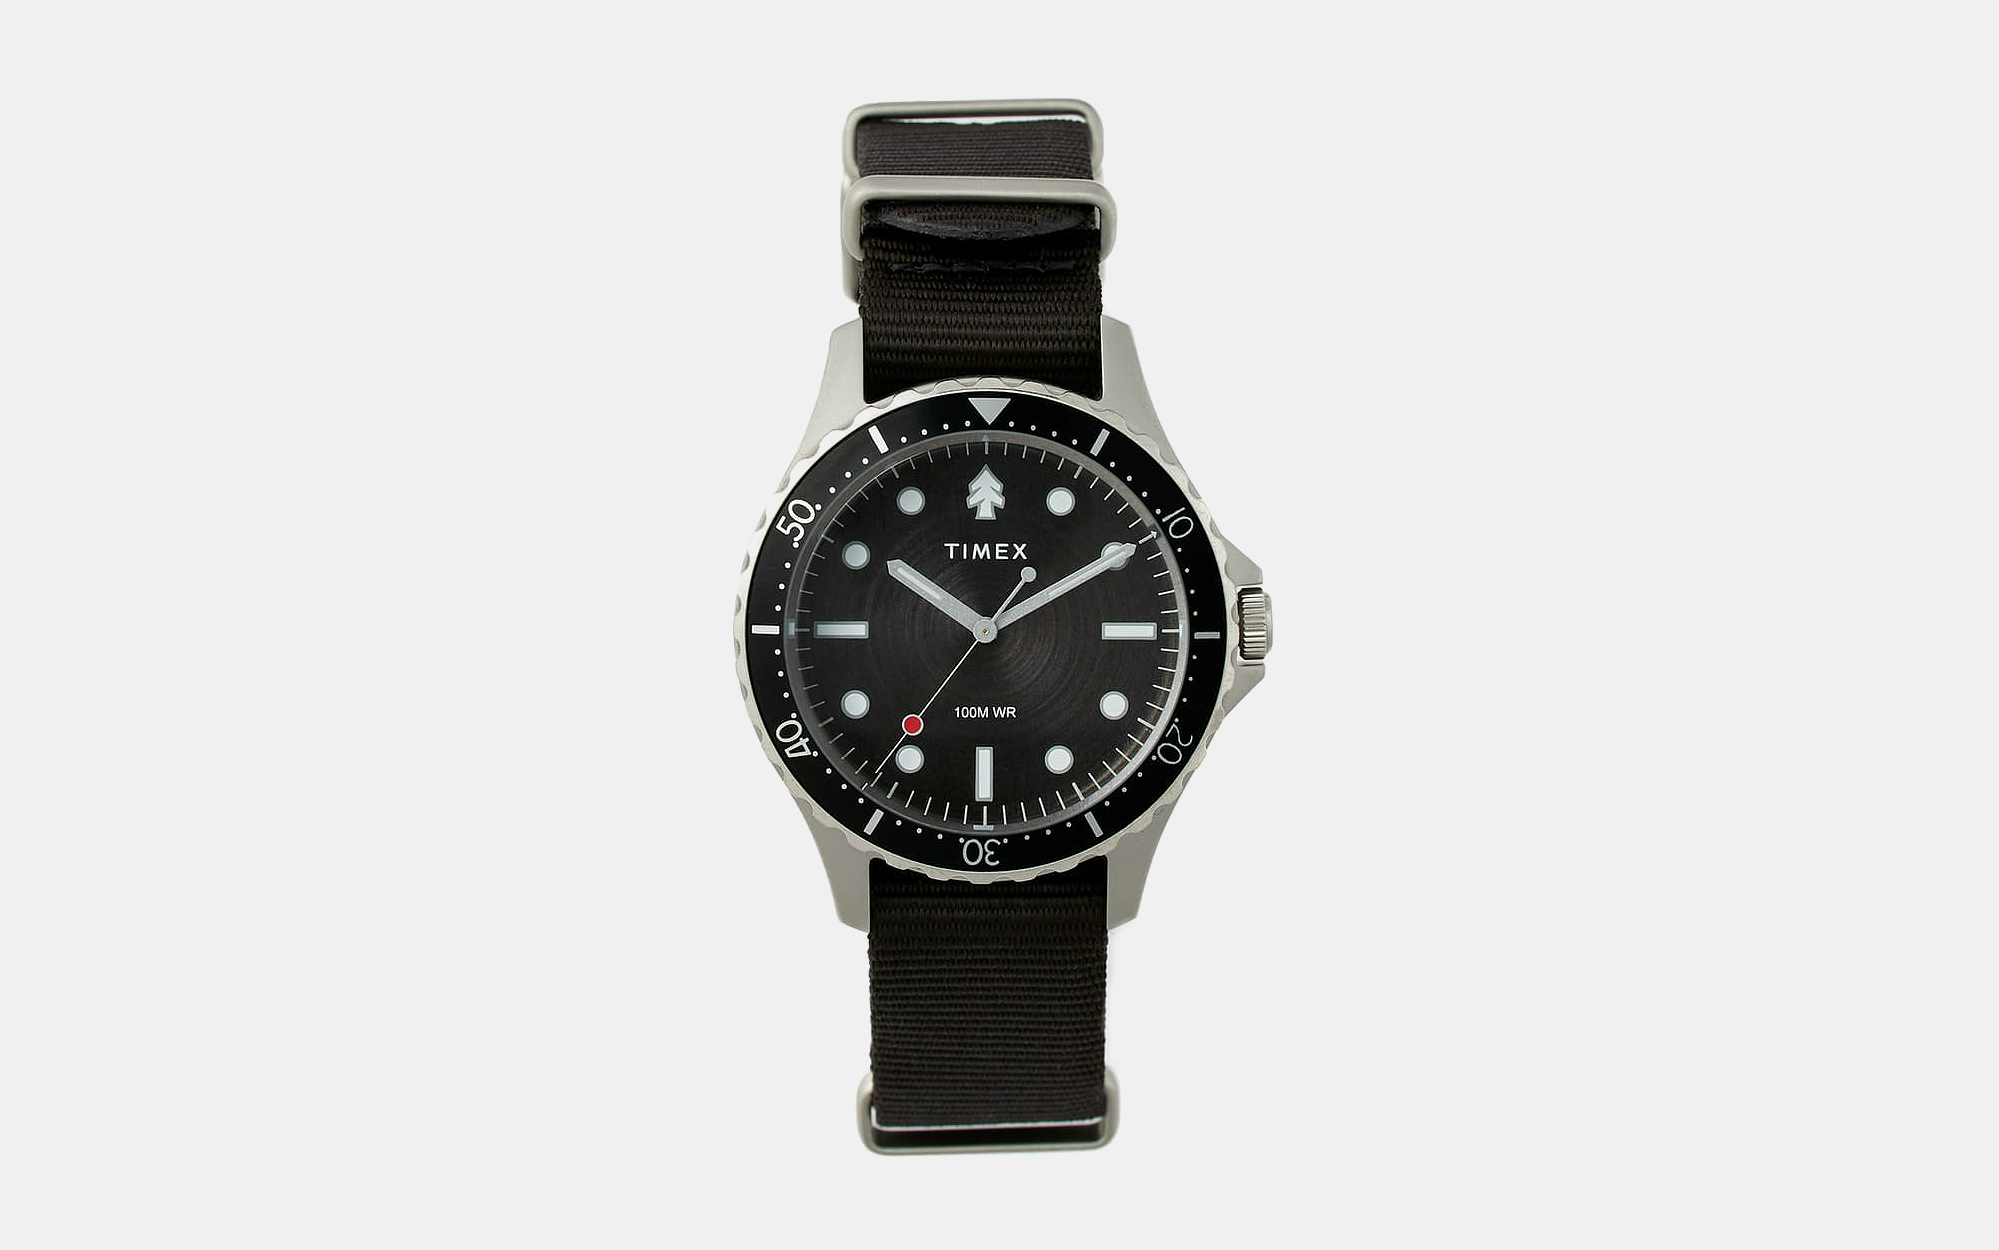 Huckberry x Timex Dive Watch